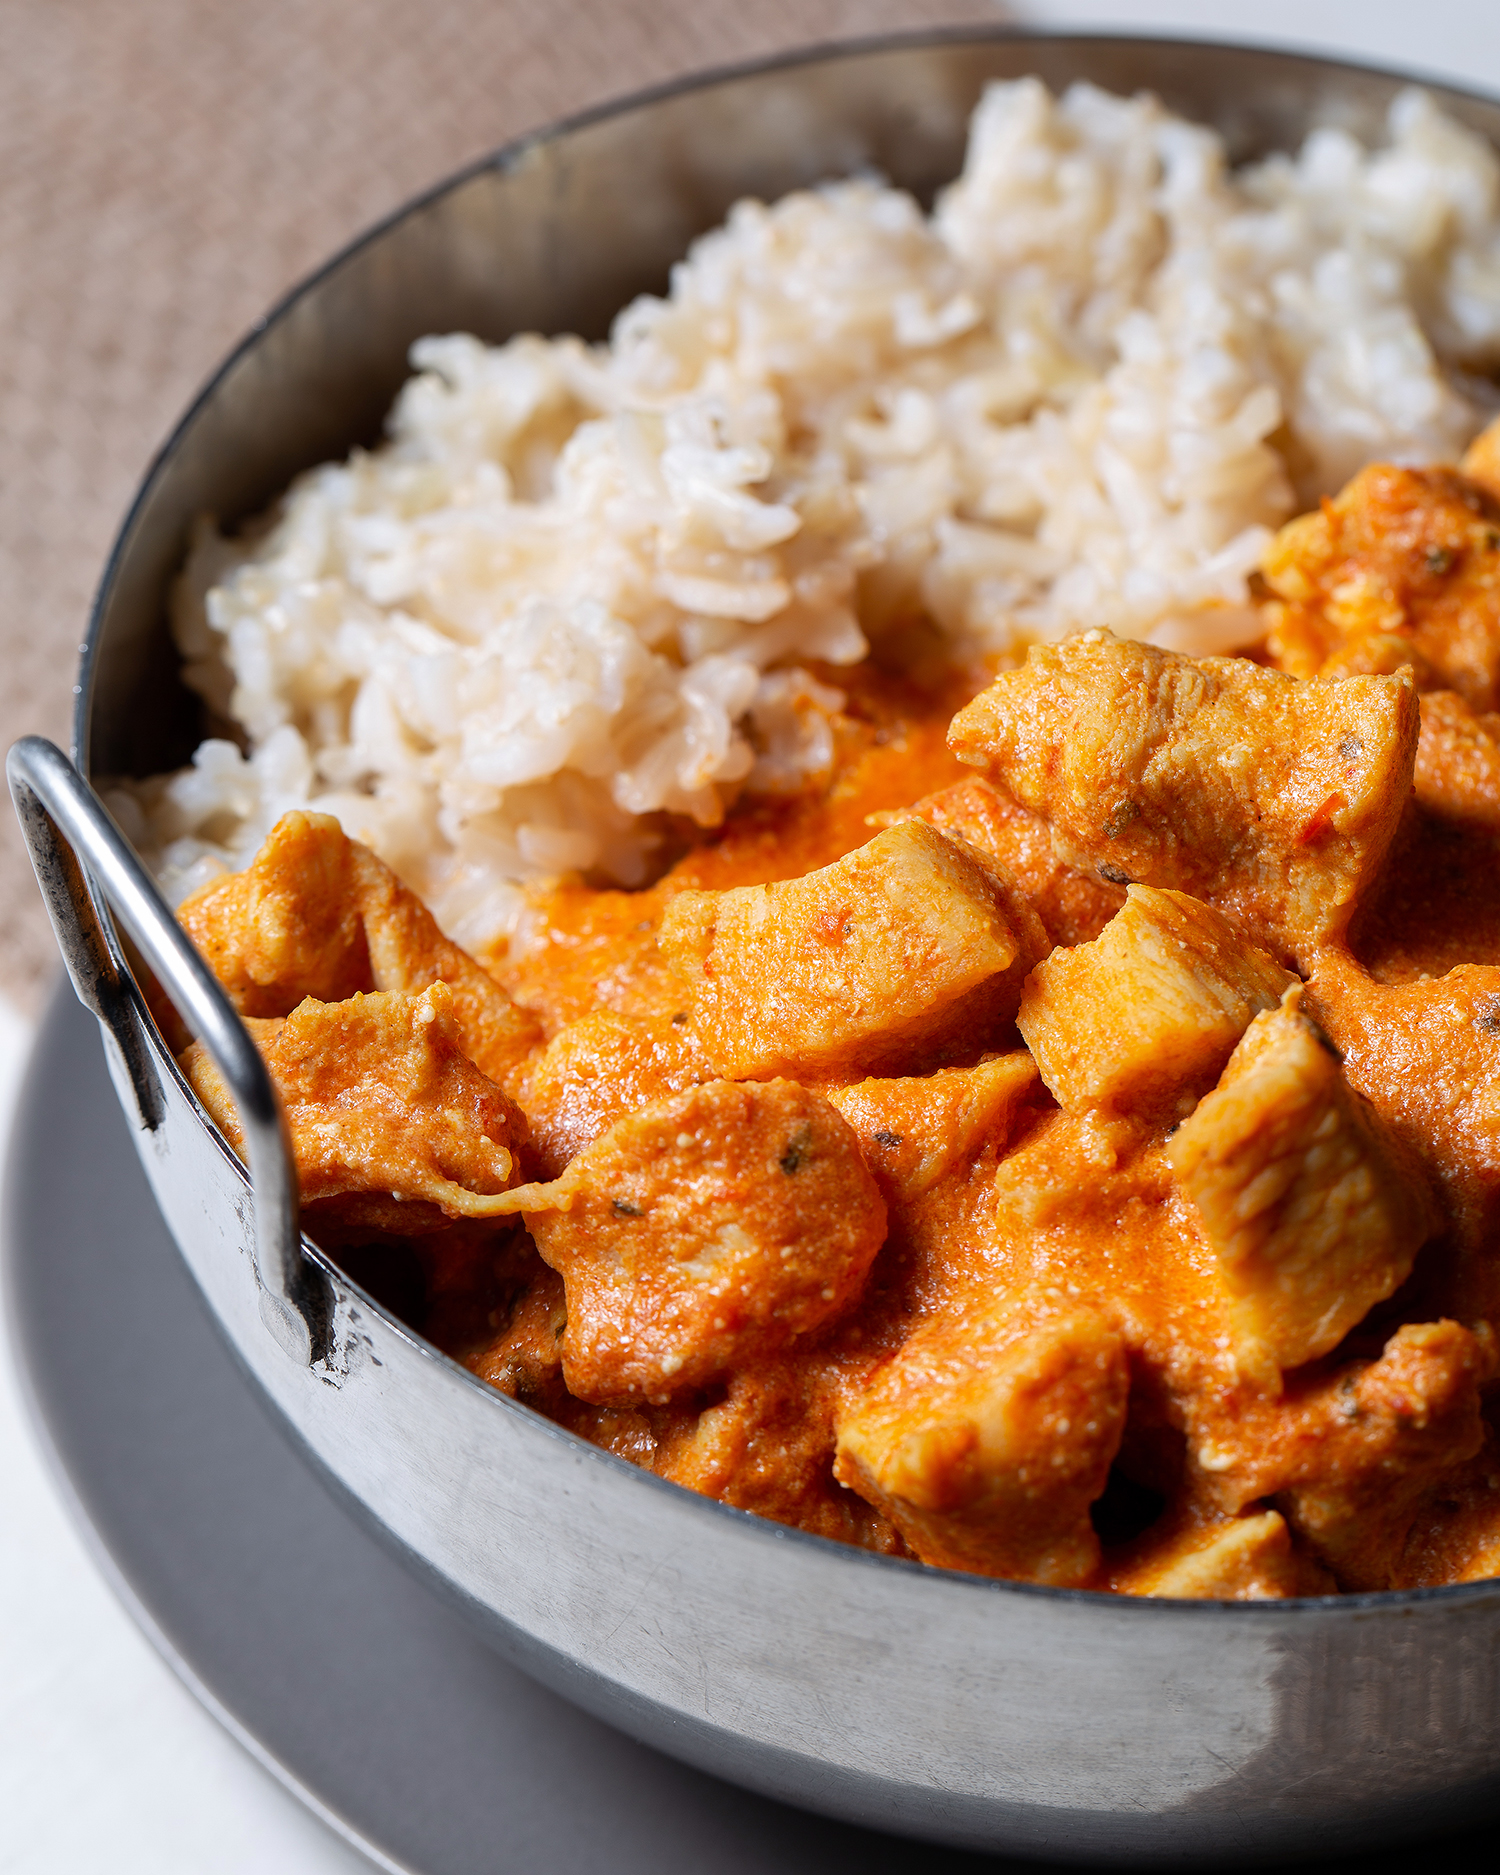 Halal Chicken Tikka Masala with Brown Basmati Rice